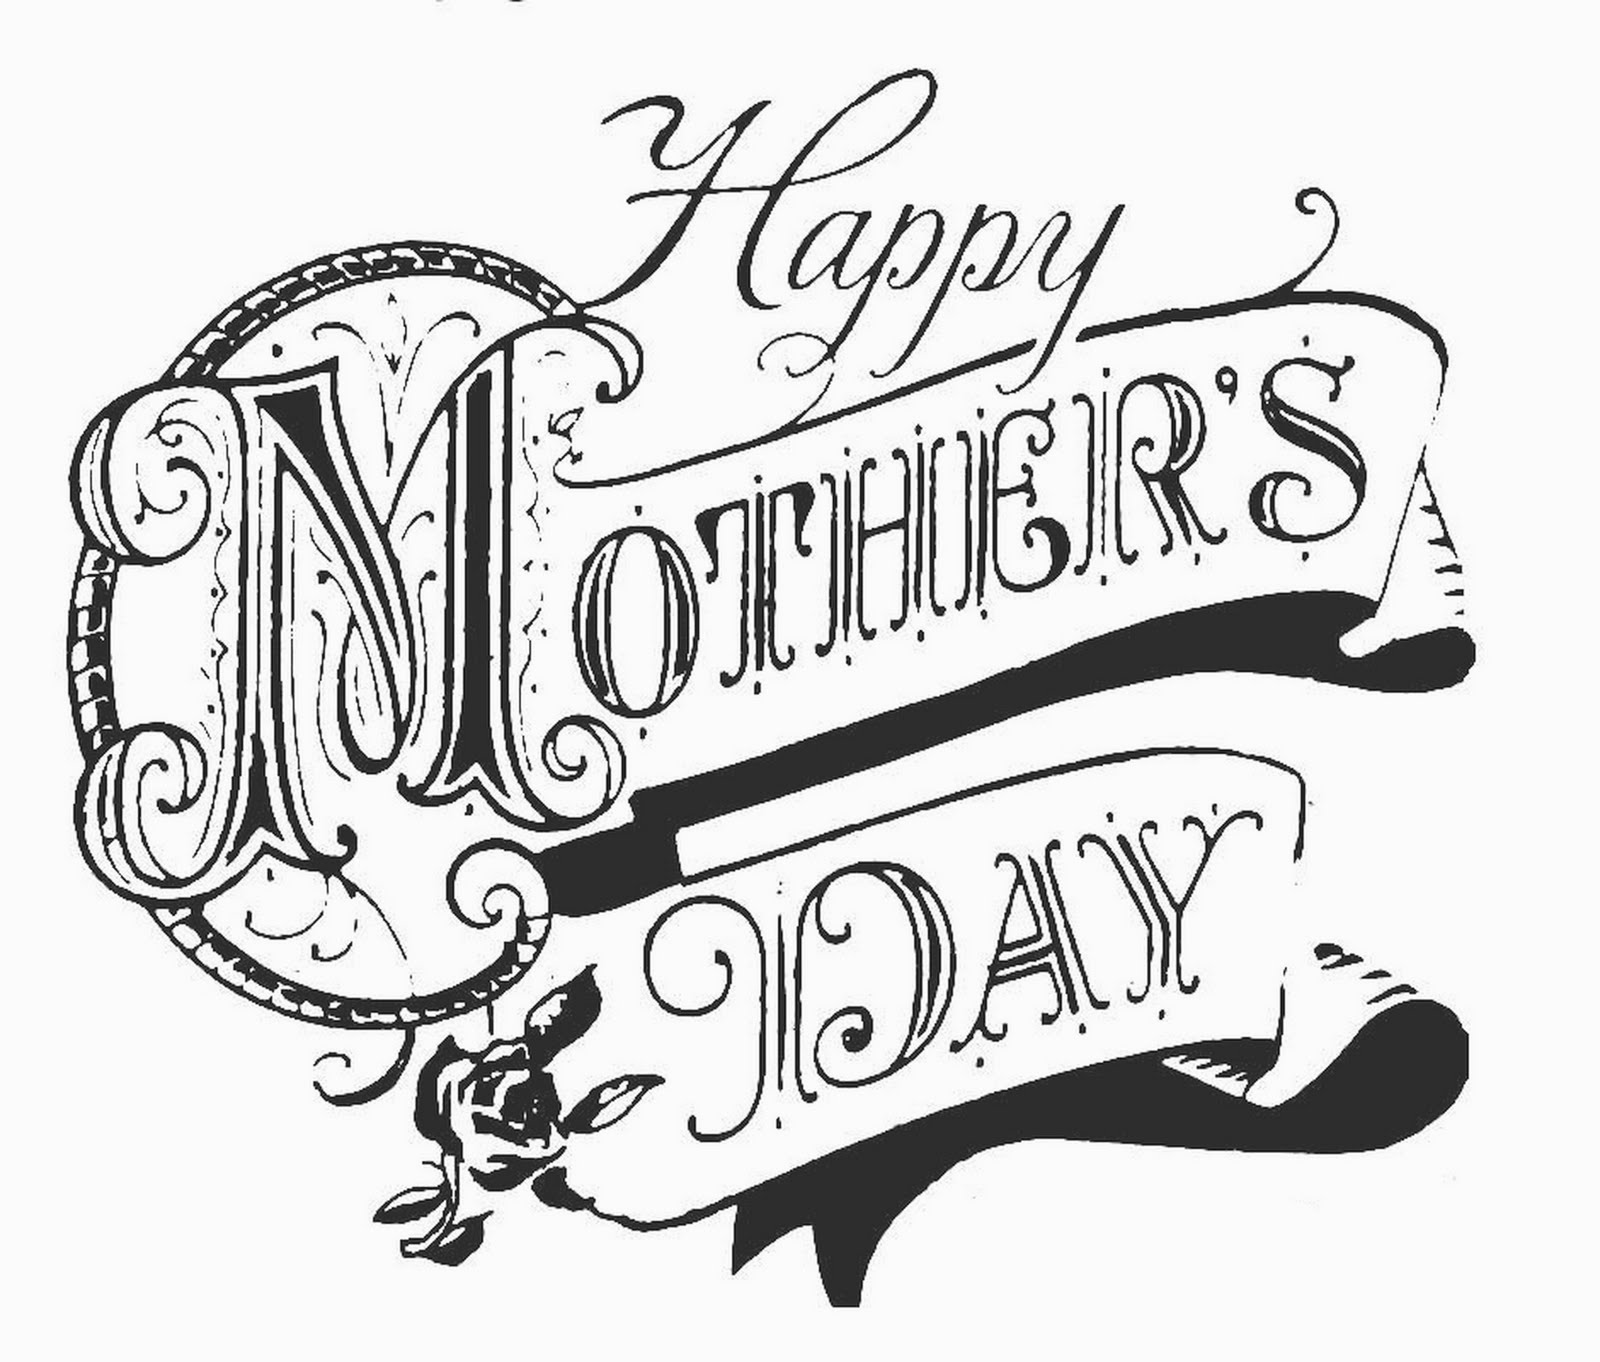 Day clipart drawing. Mother images at getdrawings